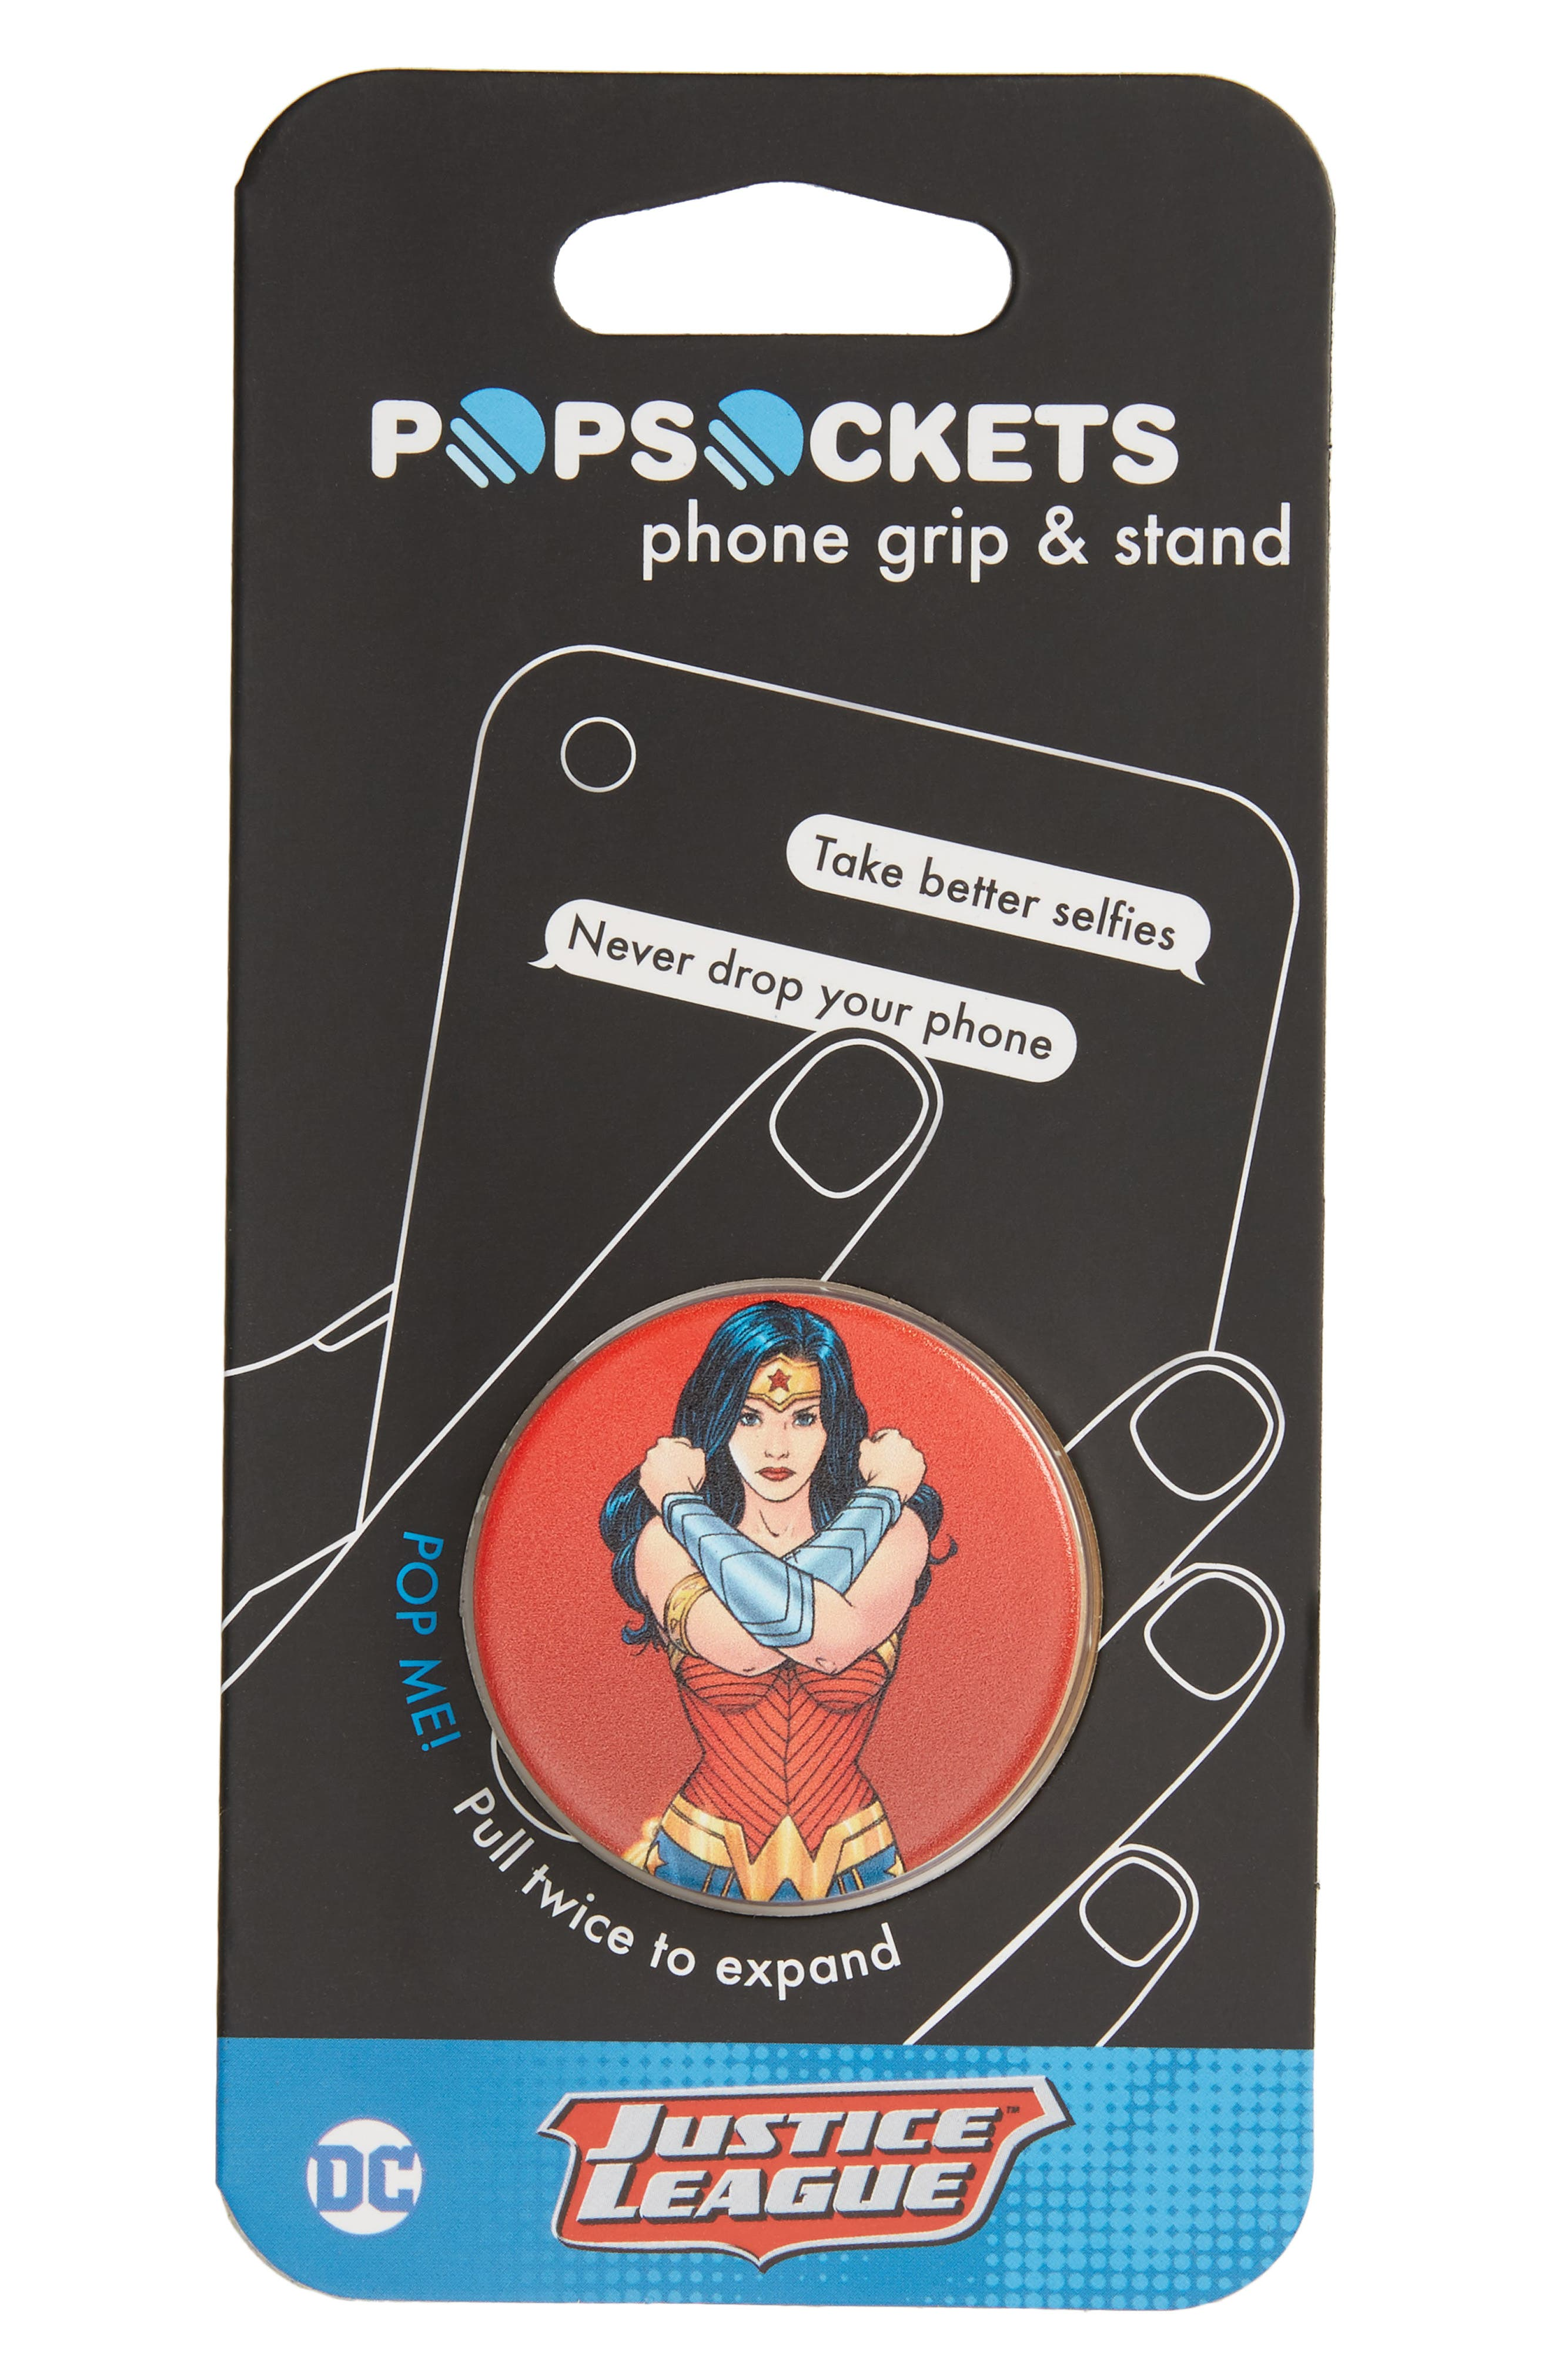 DC Wonder Woman Cell Phone Grip & Stand,                         Main,                         color,